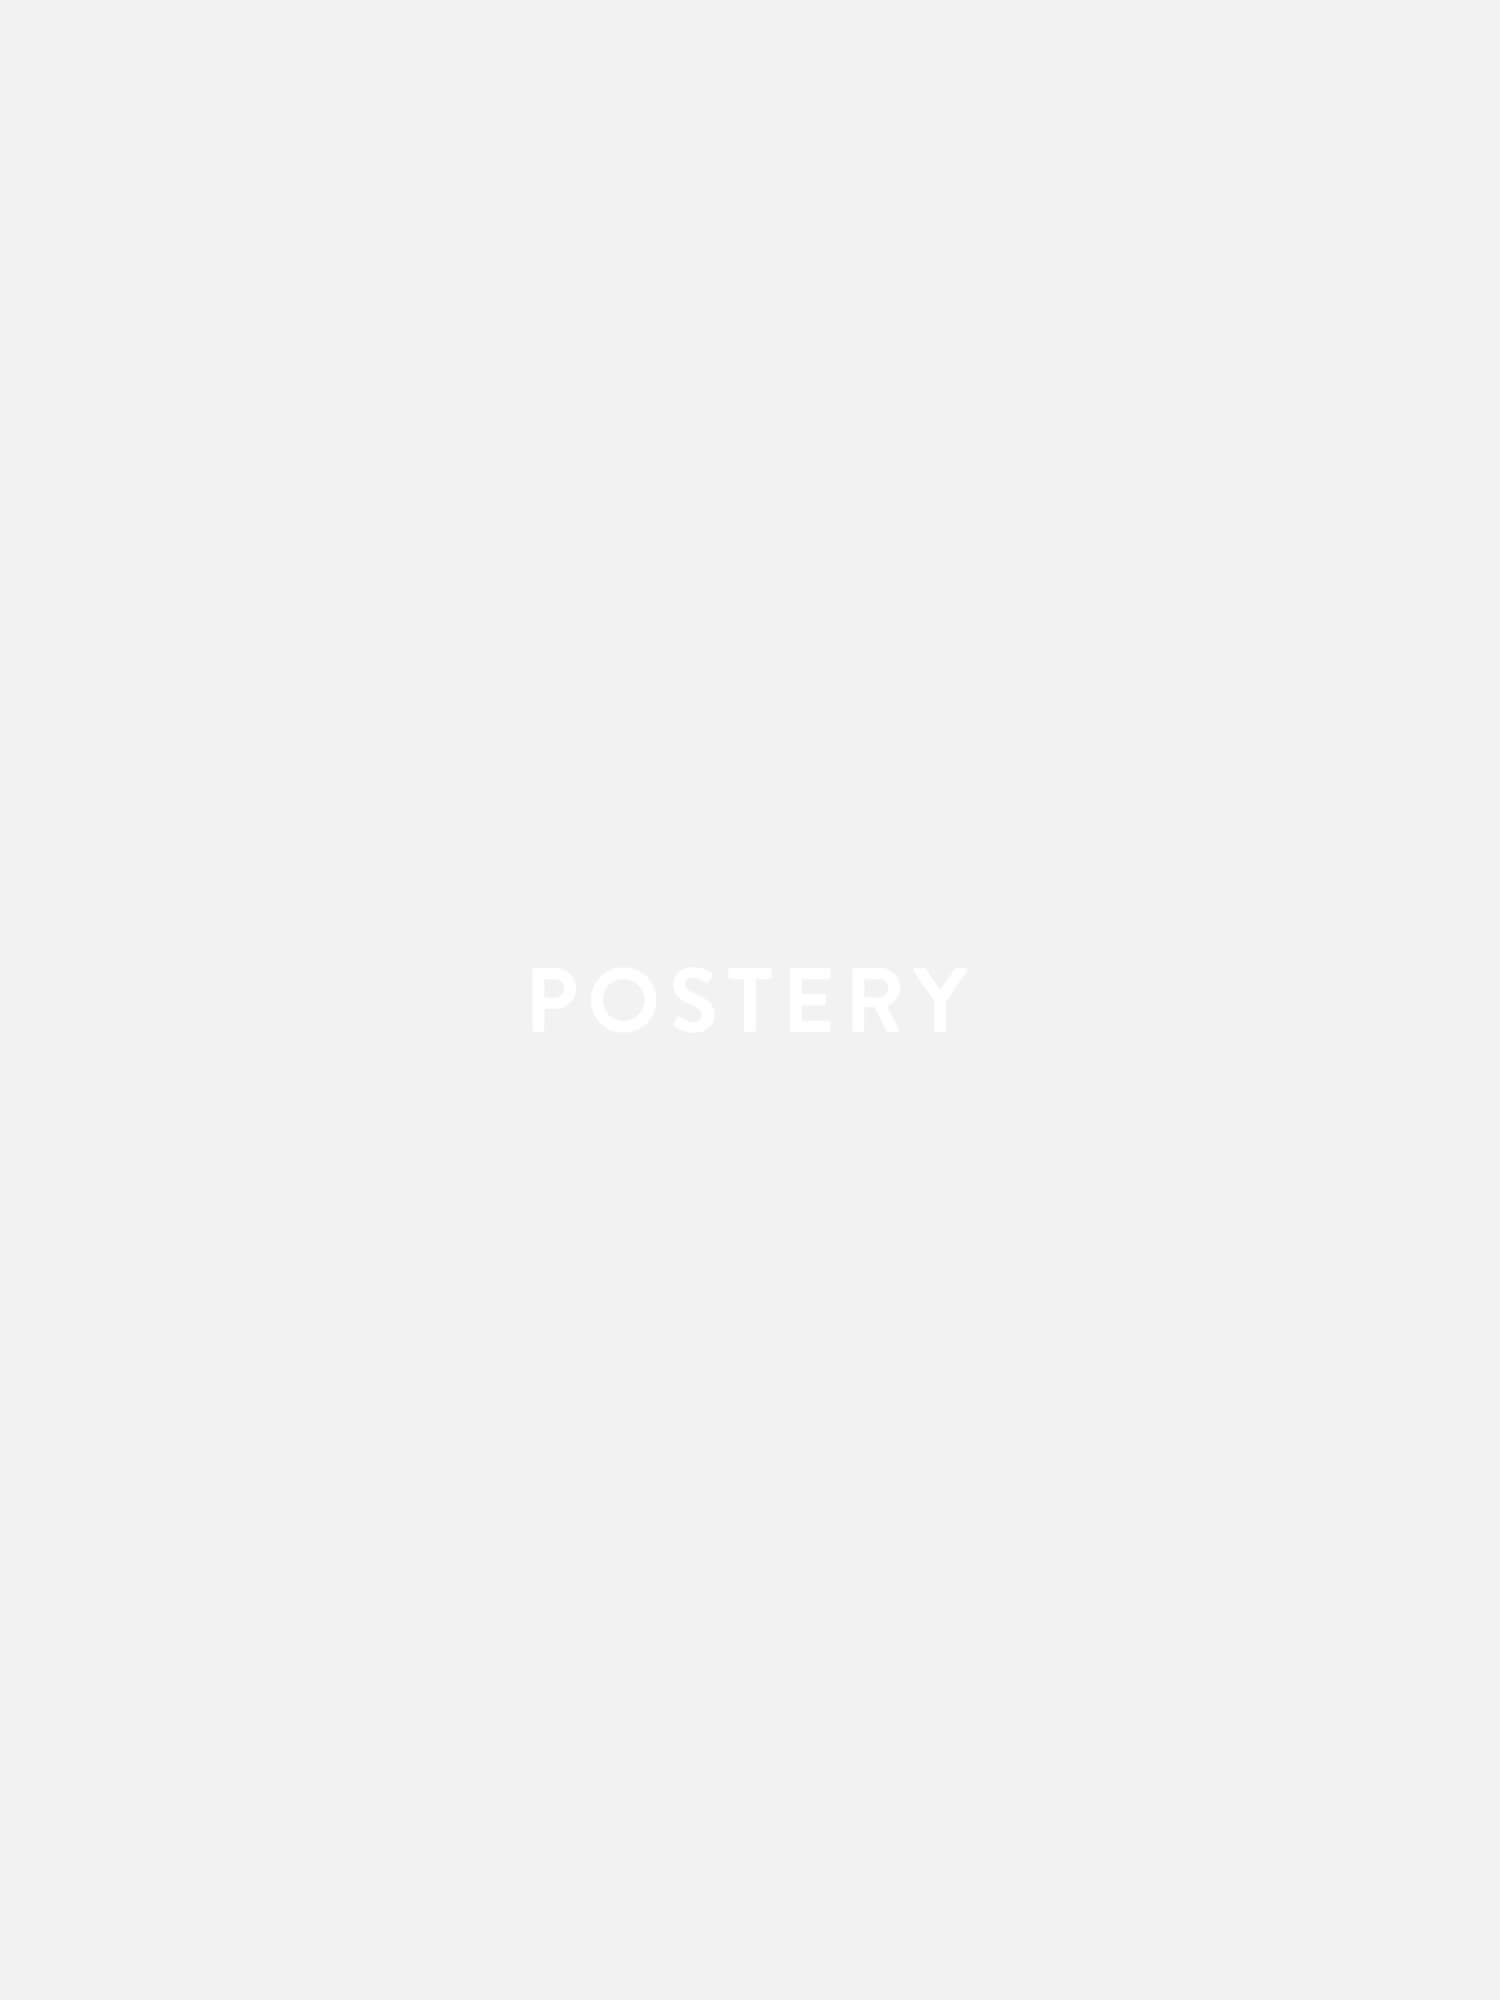 Banana Leaf Close-Up Poster